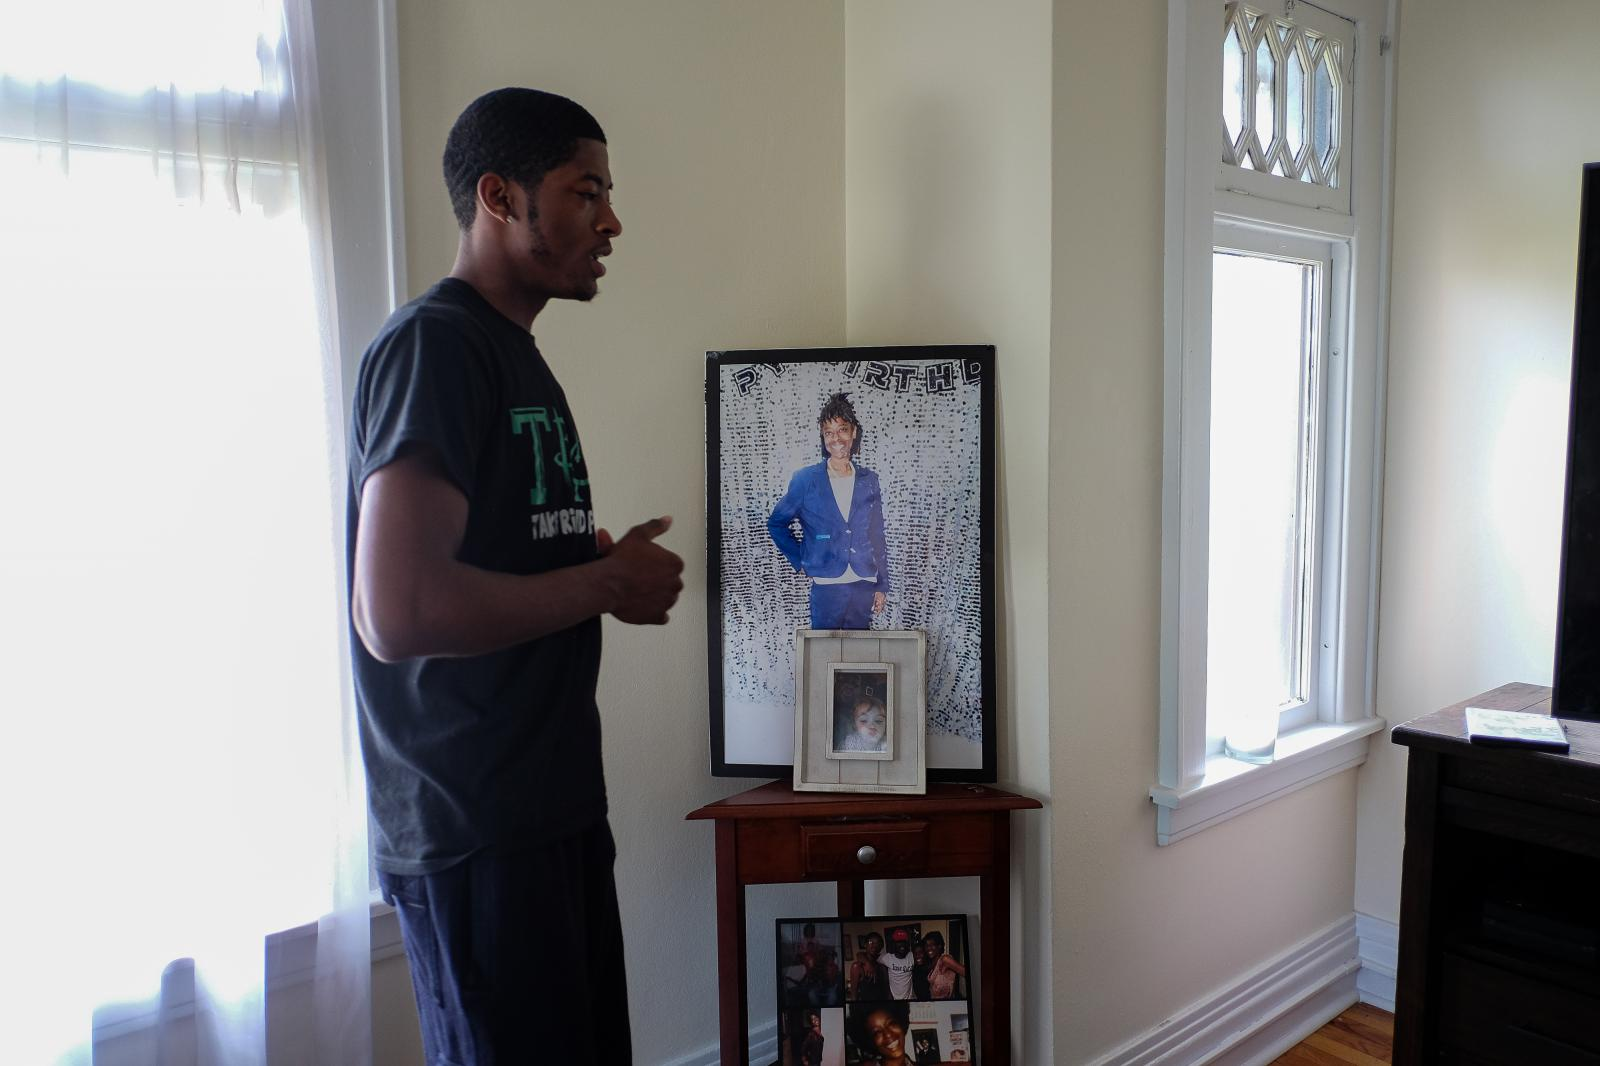 This is a photo of Blair's mother, Yvonne, that is on display in his apartment.